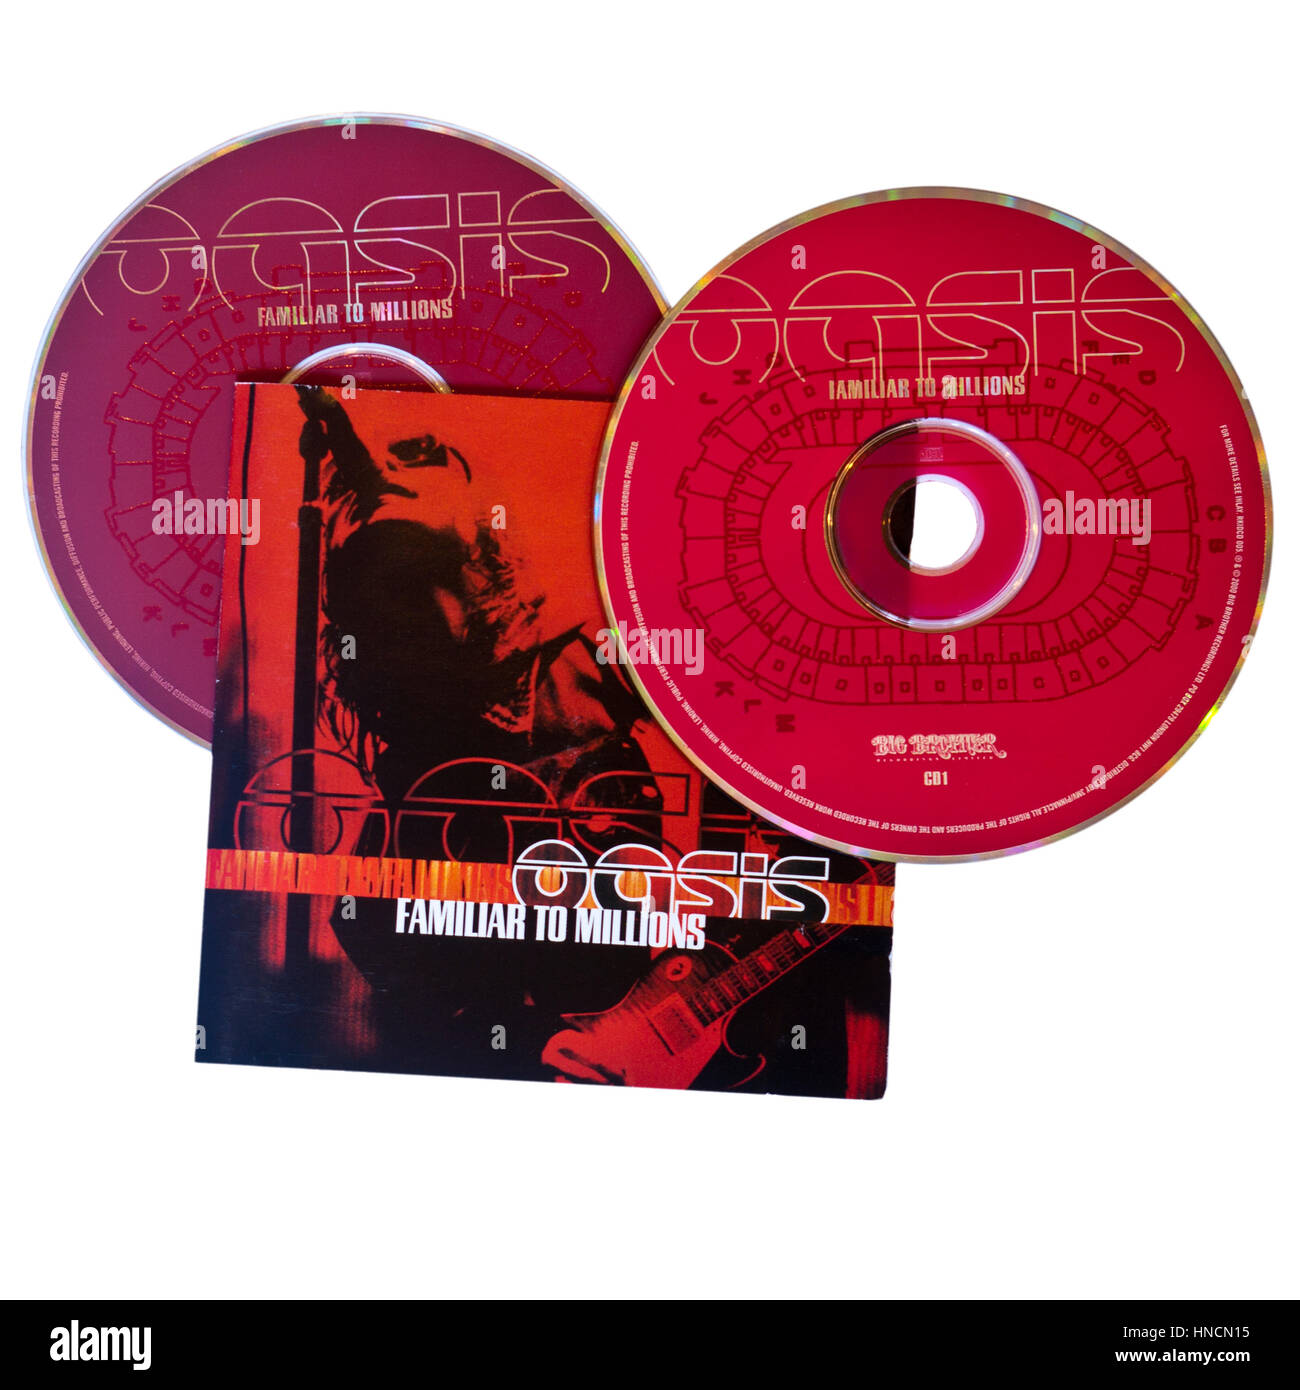 Oasis Familiar To Millions Music CD - Stock Image